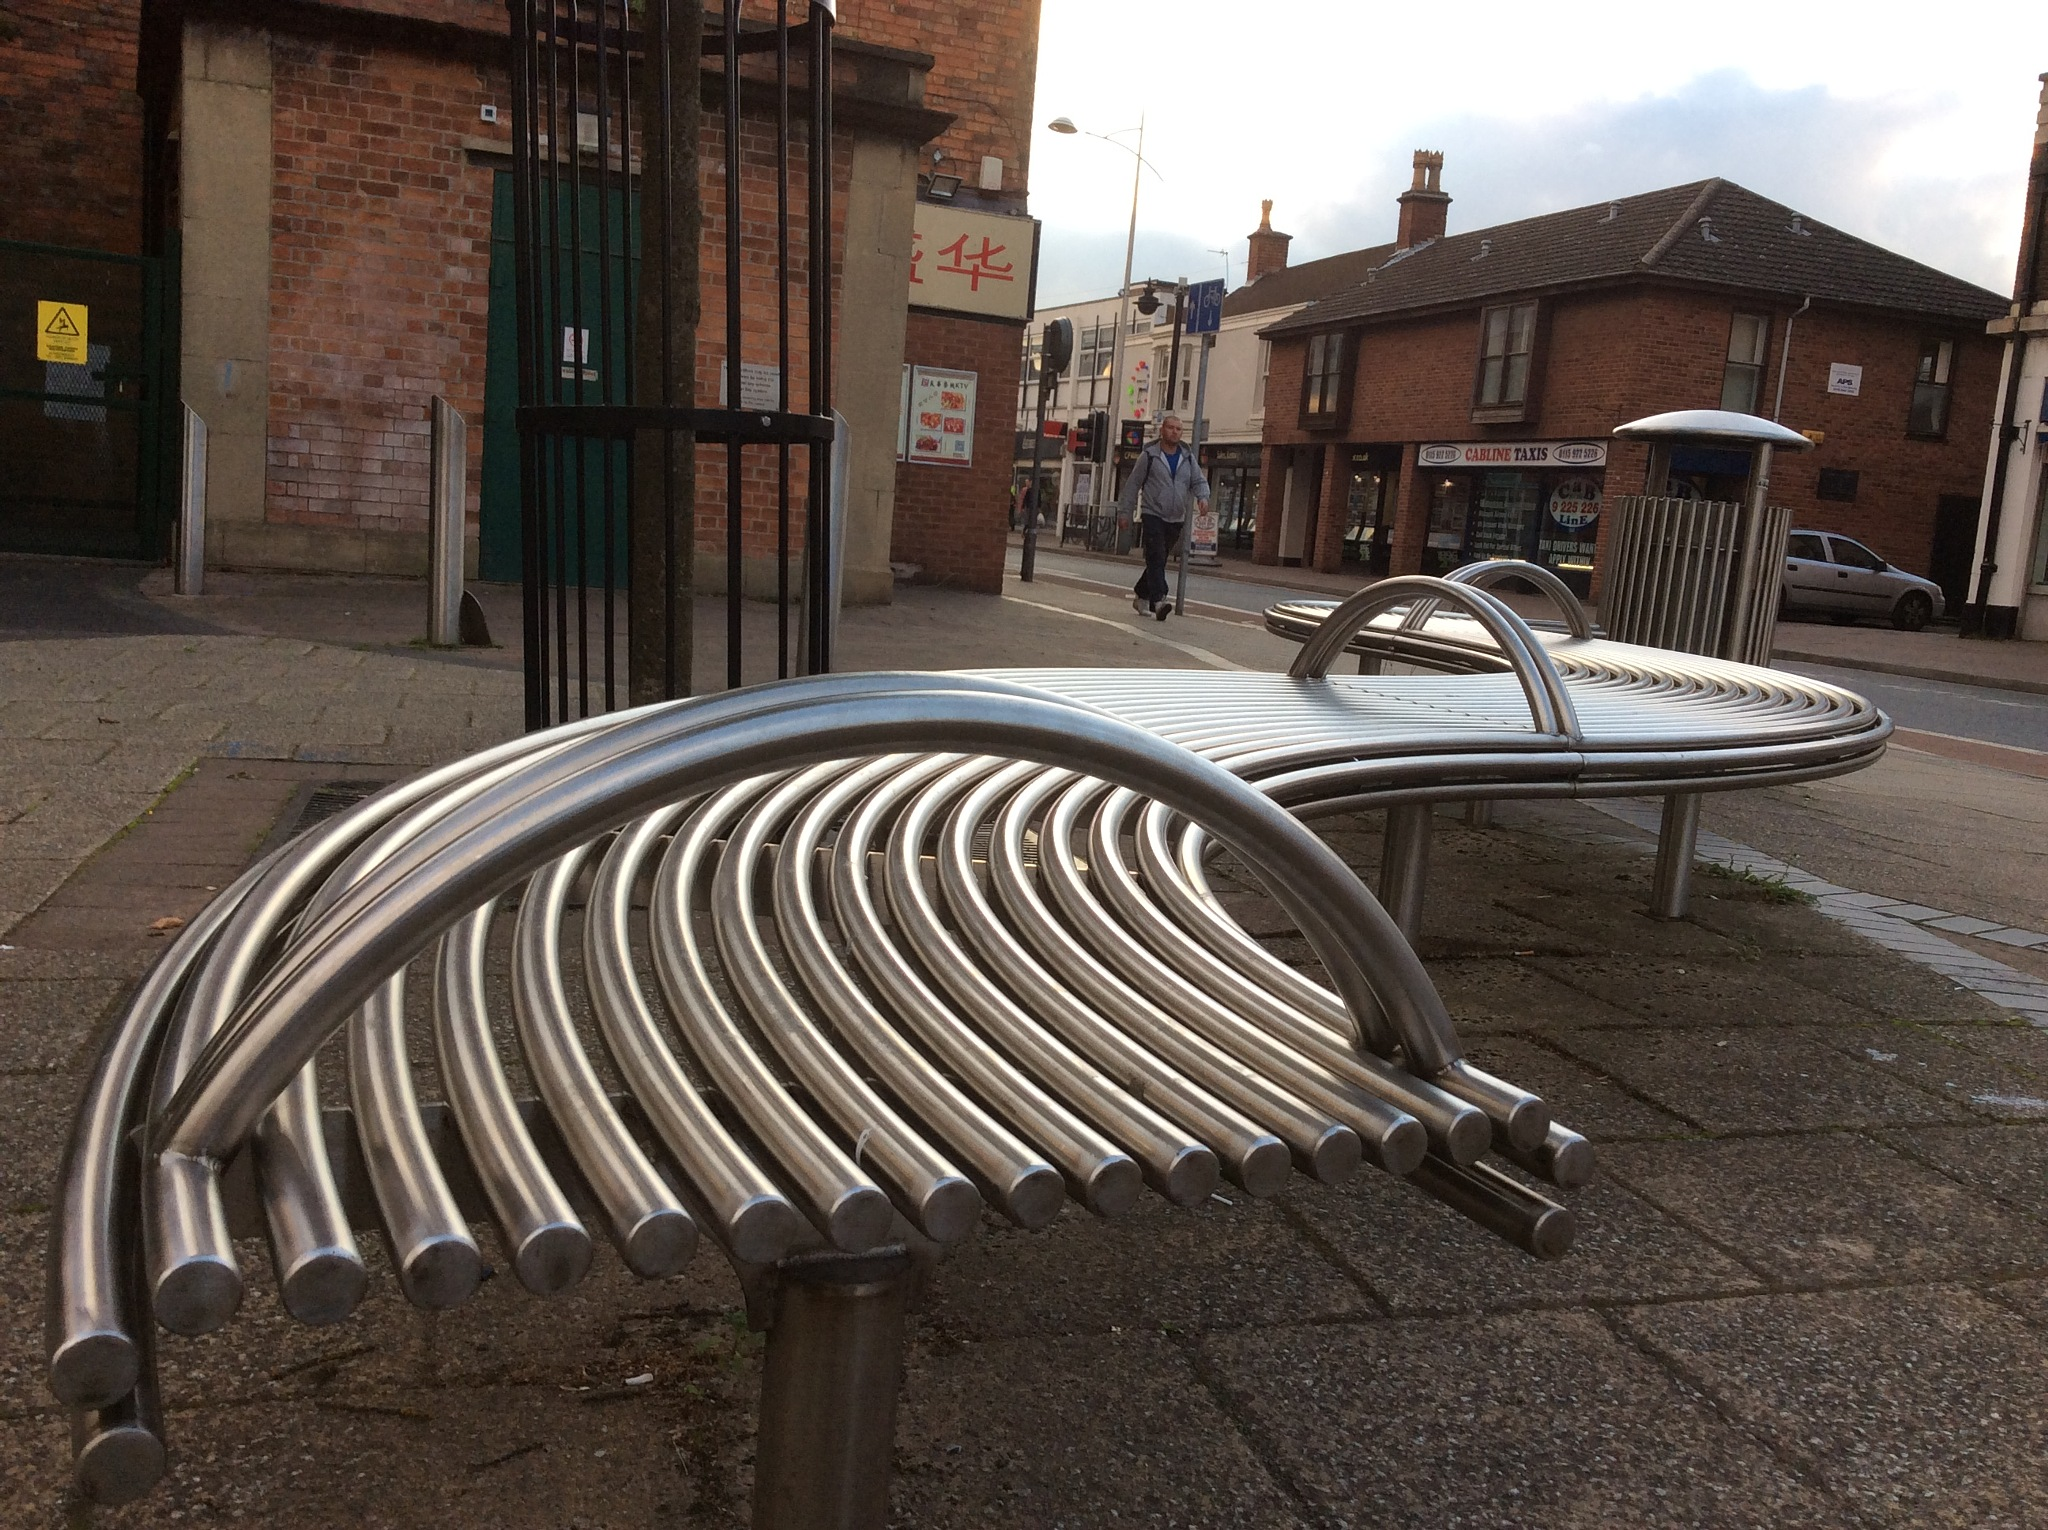 Abstract Bench 3 by simie